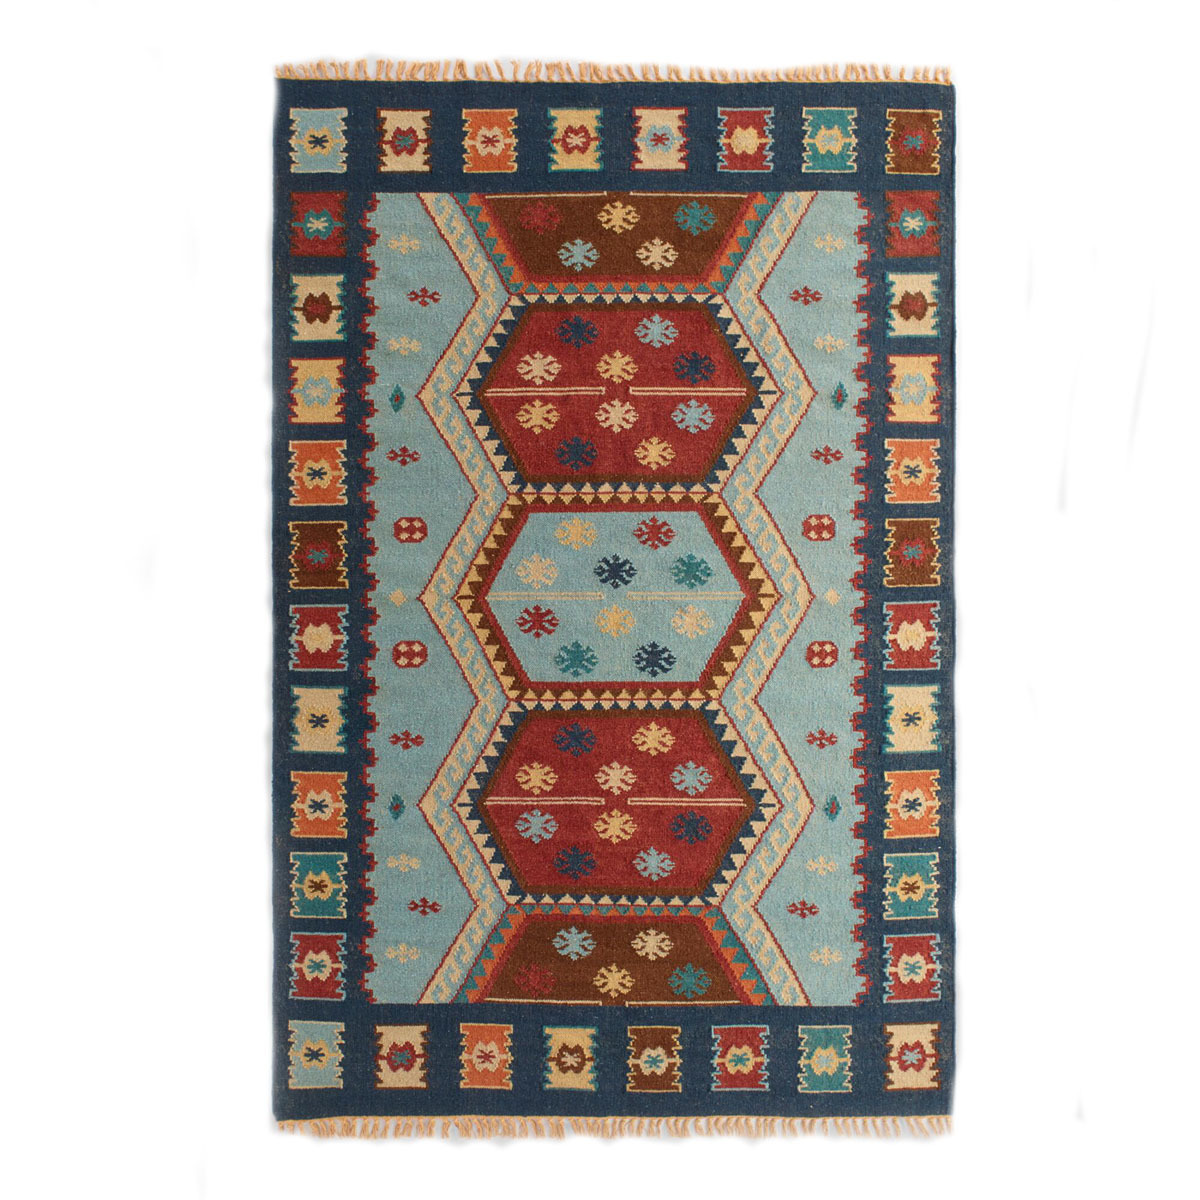 Western-inspired patterned rug made of wool and cotton. photo